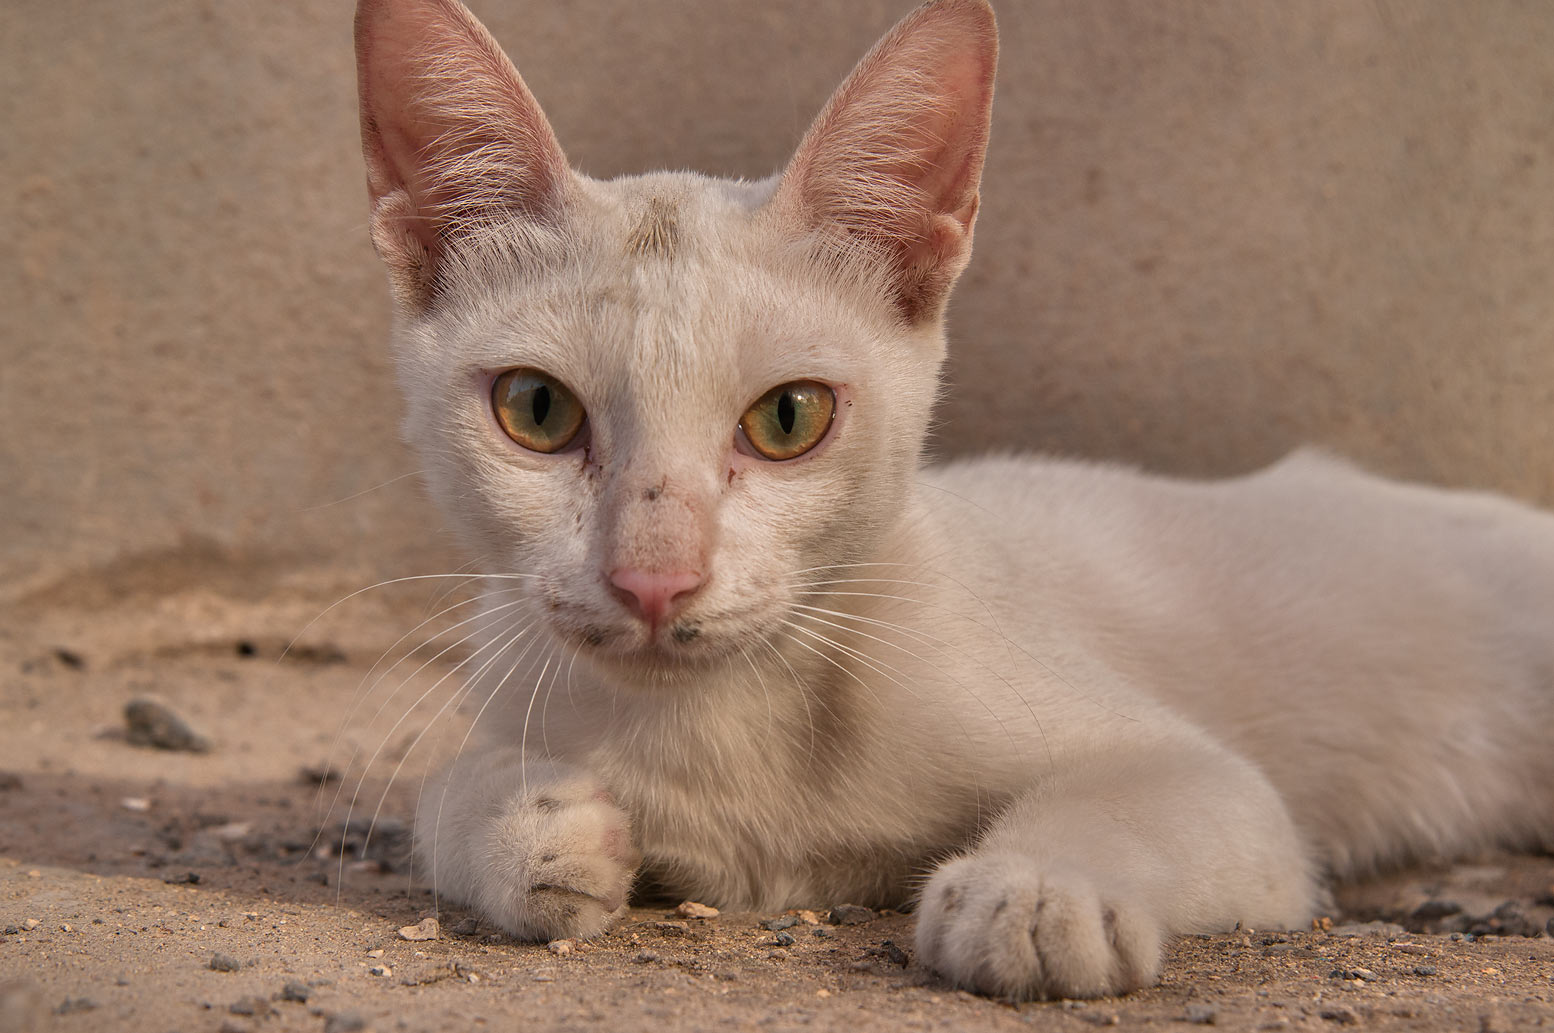 White cat at Sikkat Ibn Al Rabei near Al Dawakhil St., Najma area. Doha, Qatar